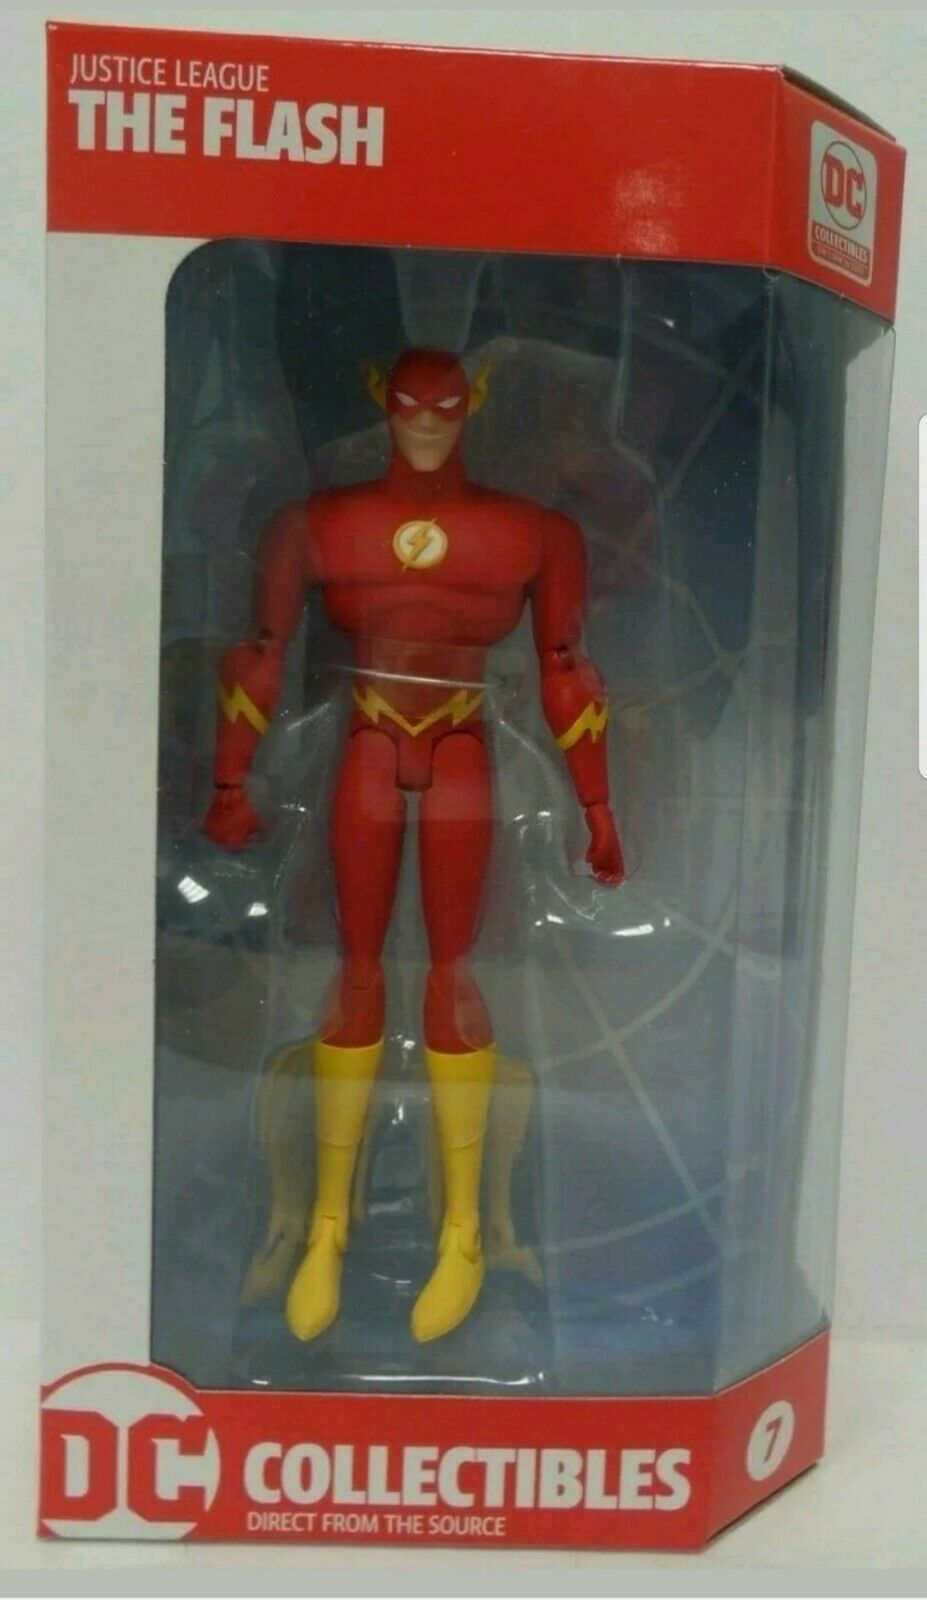 Justice League Animated The Flash Figure DC Collectibles DCU Exclusive